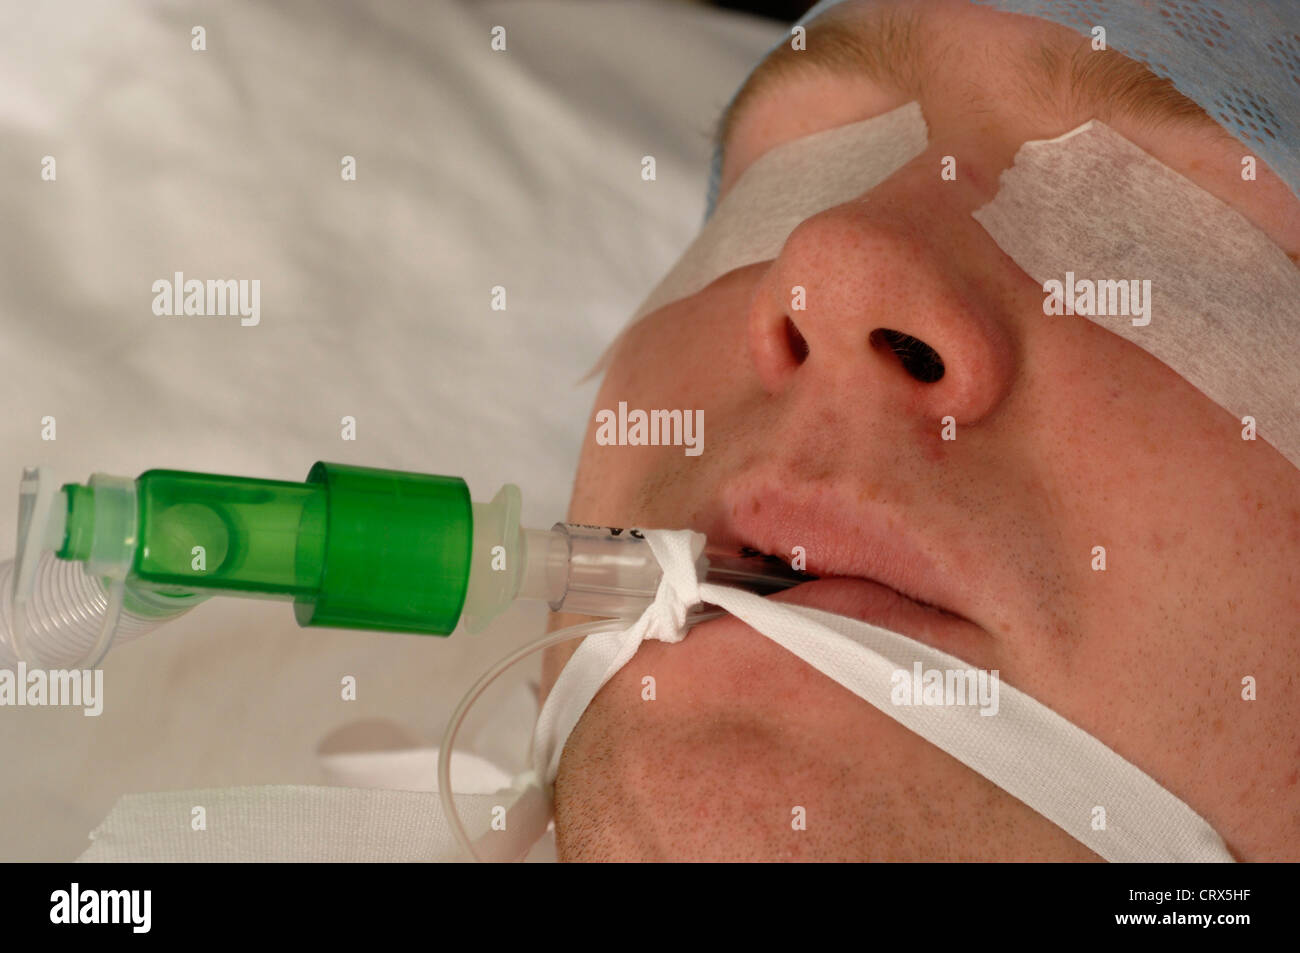 Close up of an anesthetized patient. - Stock Image